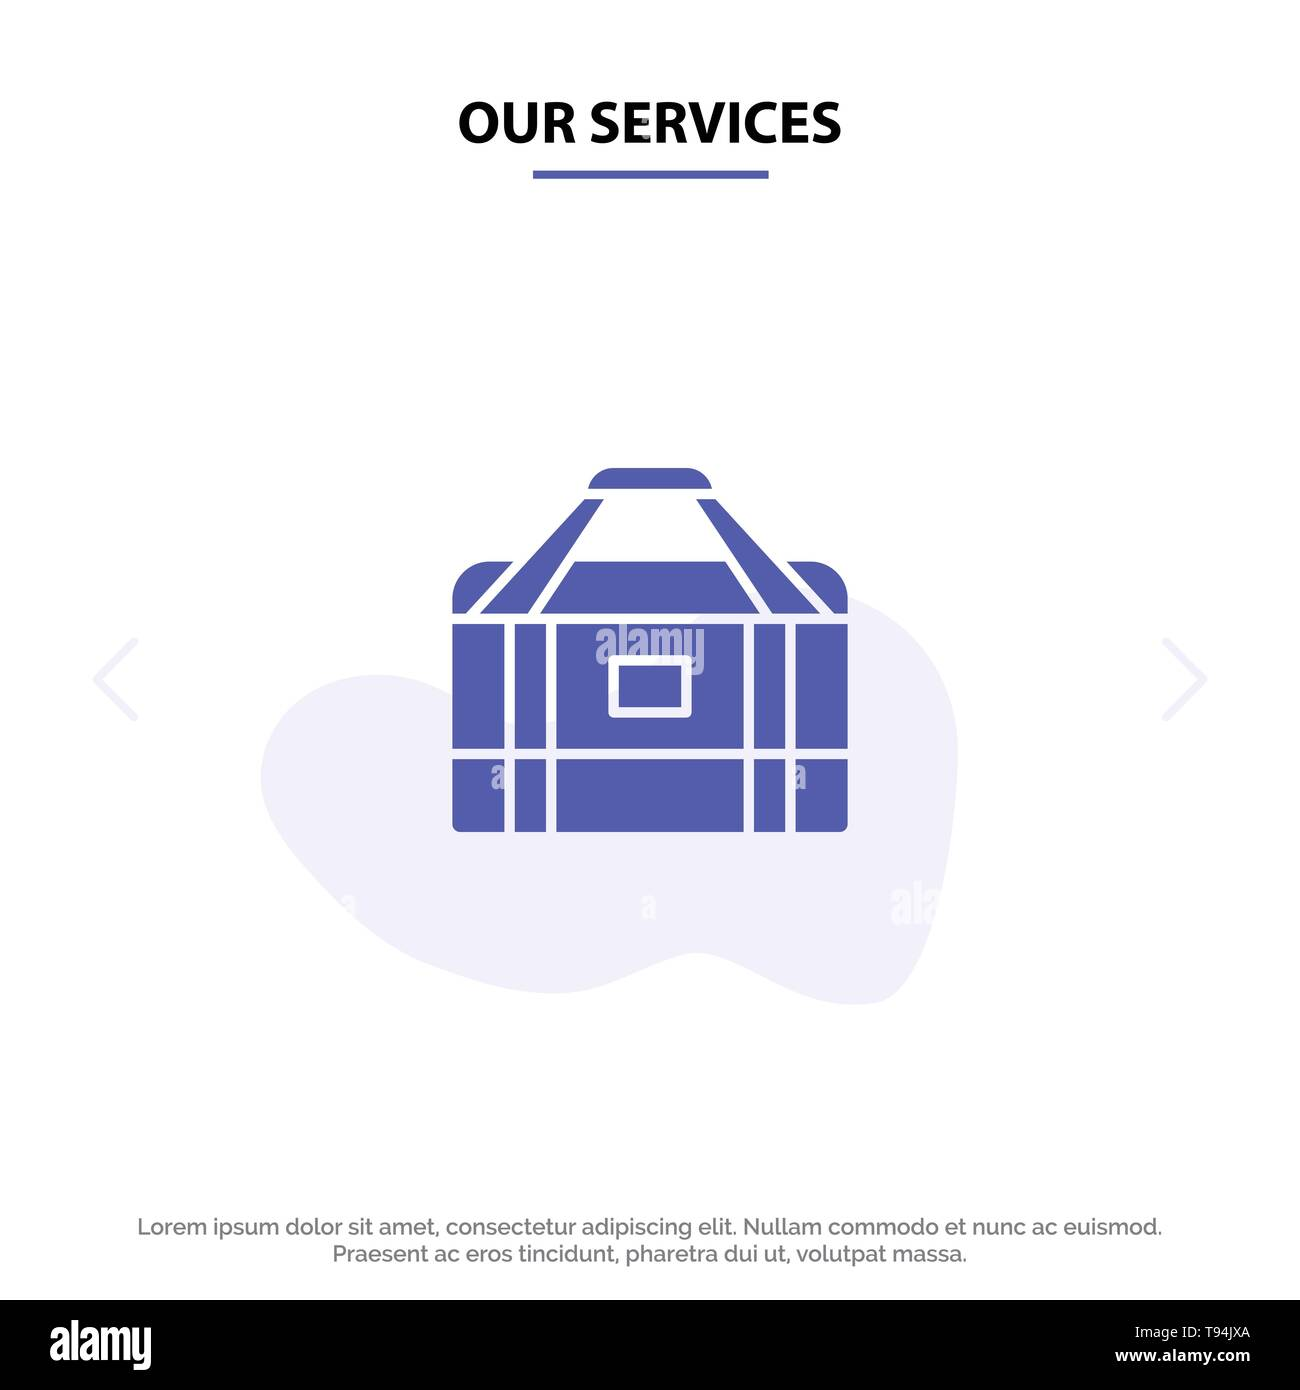 Our Services Bag, Equipment, Gym, Sports Solid Glyph Icon Web card Template - Stock Image